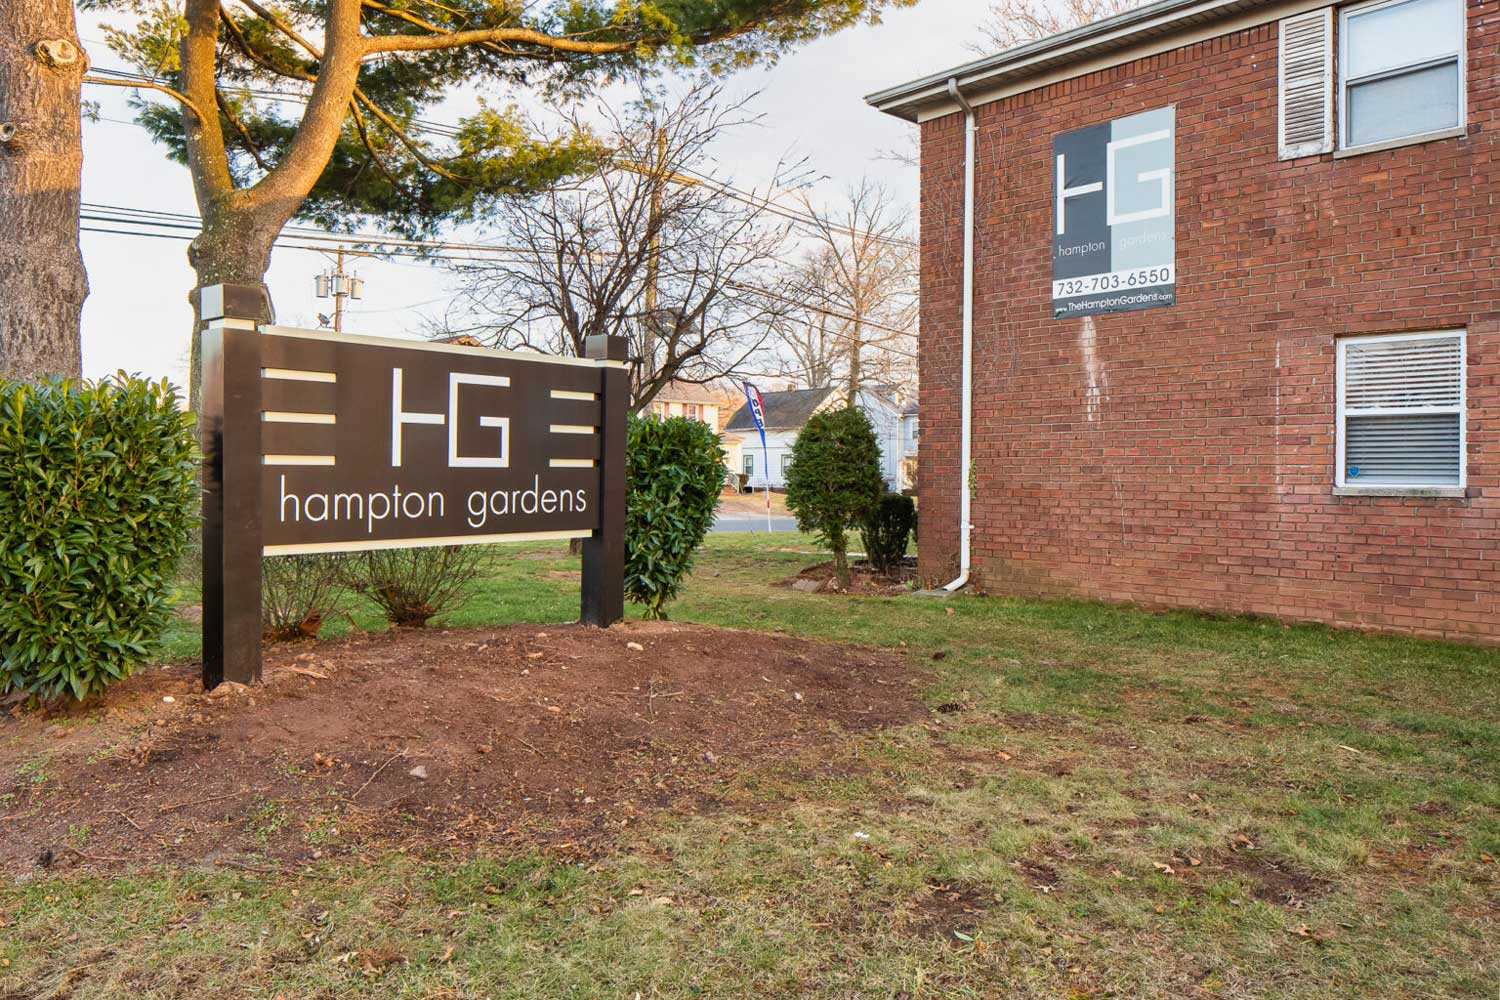 24-Hour Availability at Hampton Gardens Apartments in Middlesex, New Jersey